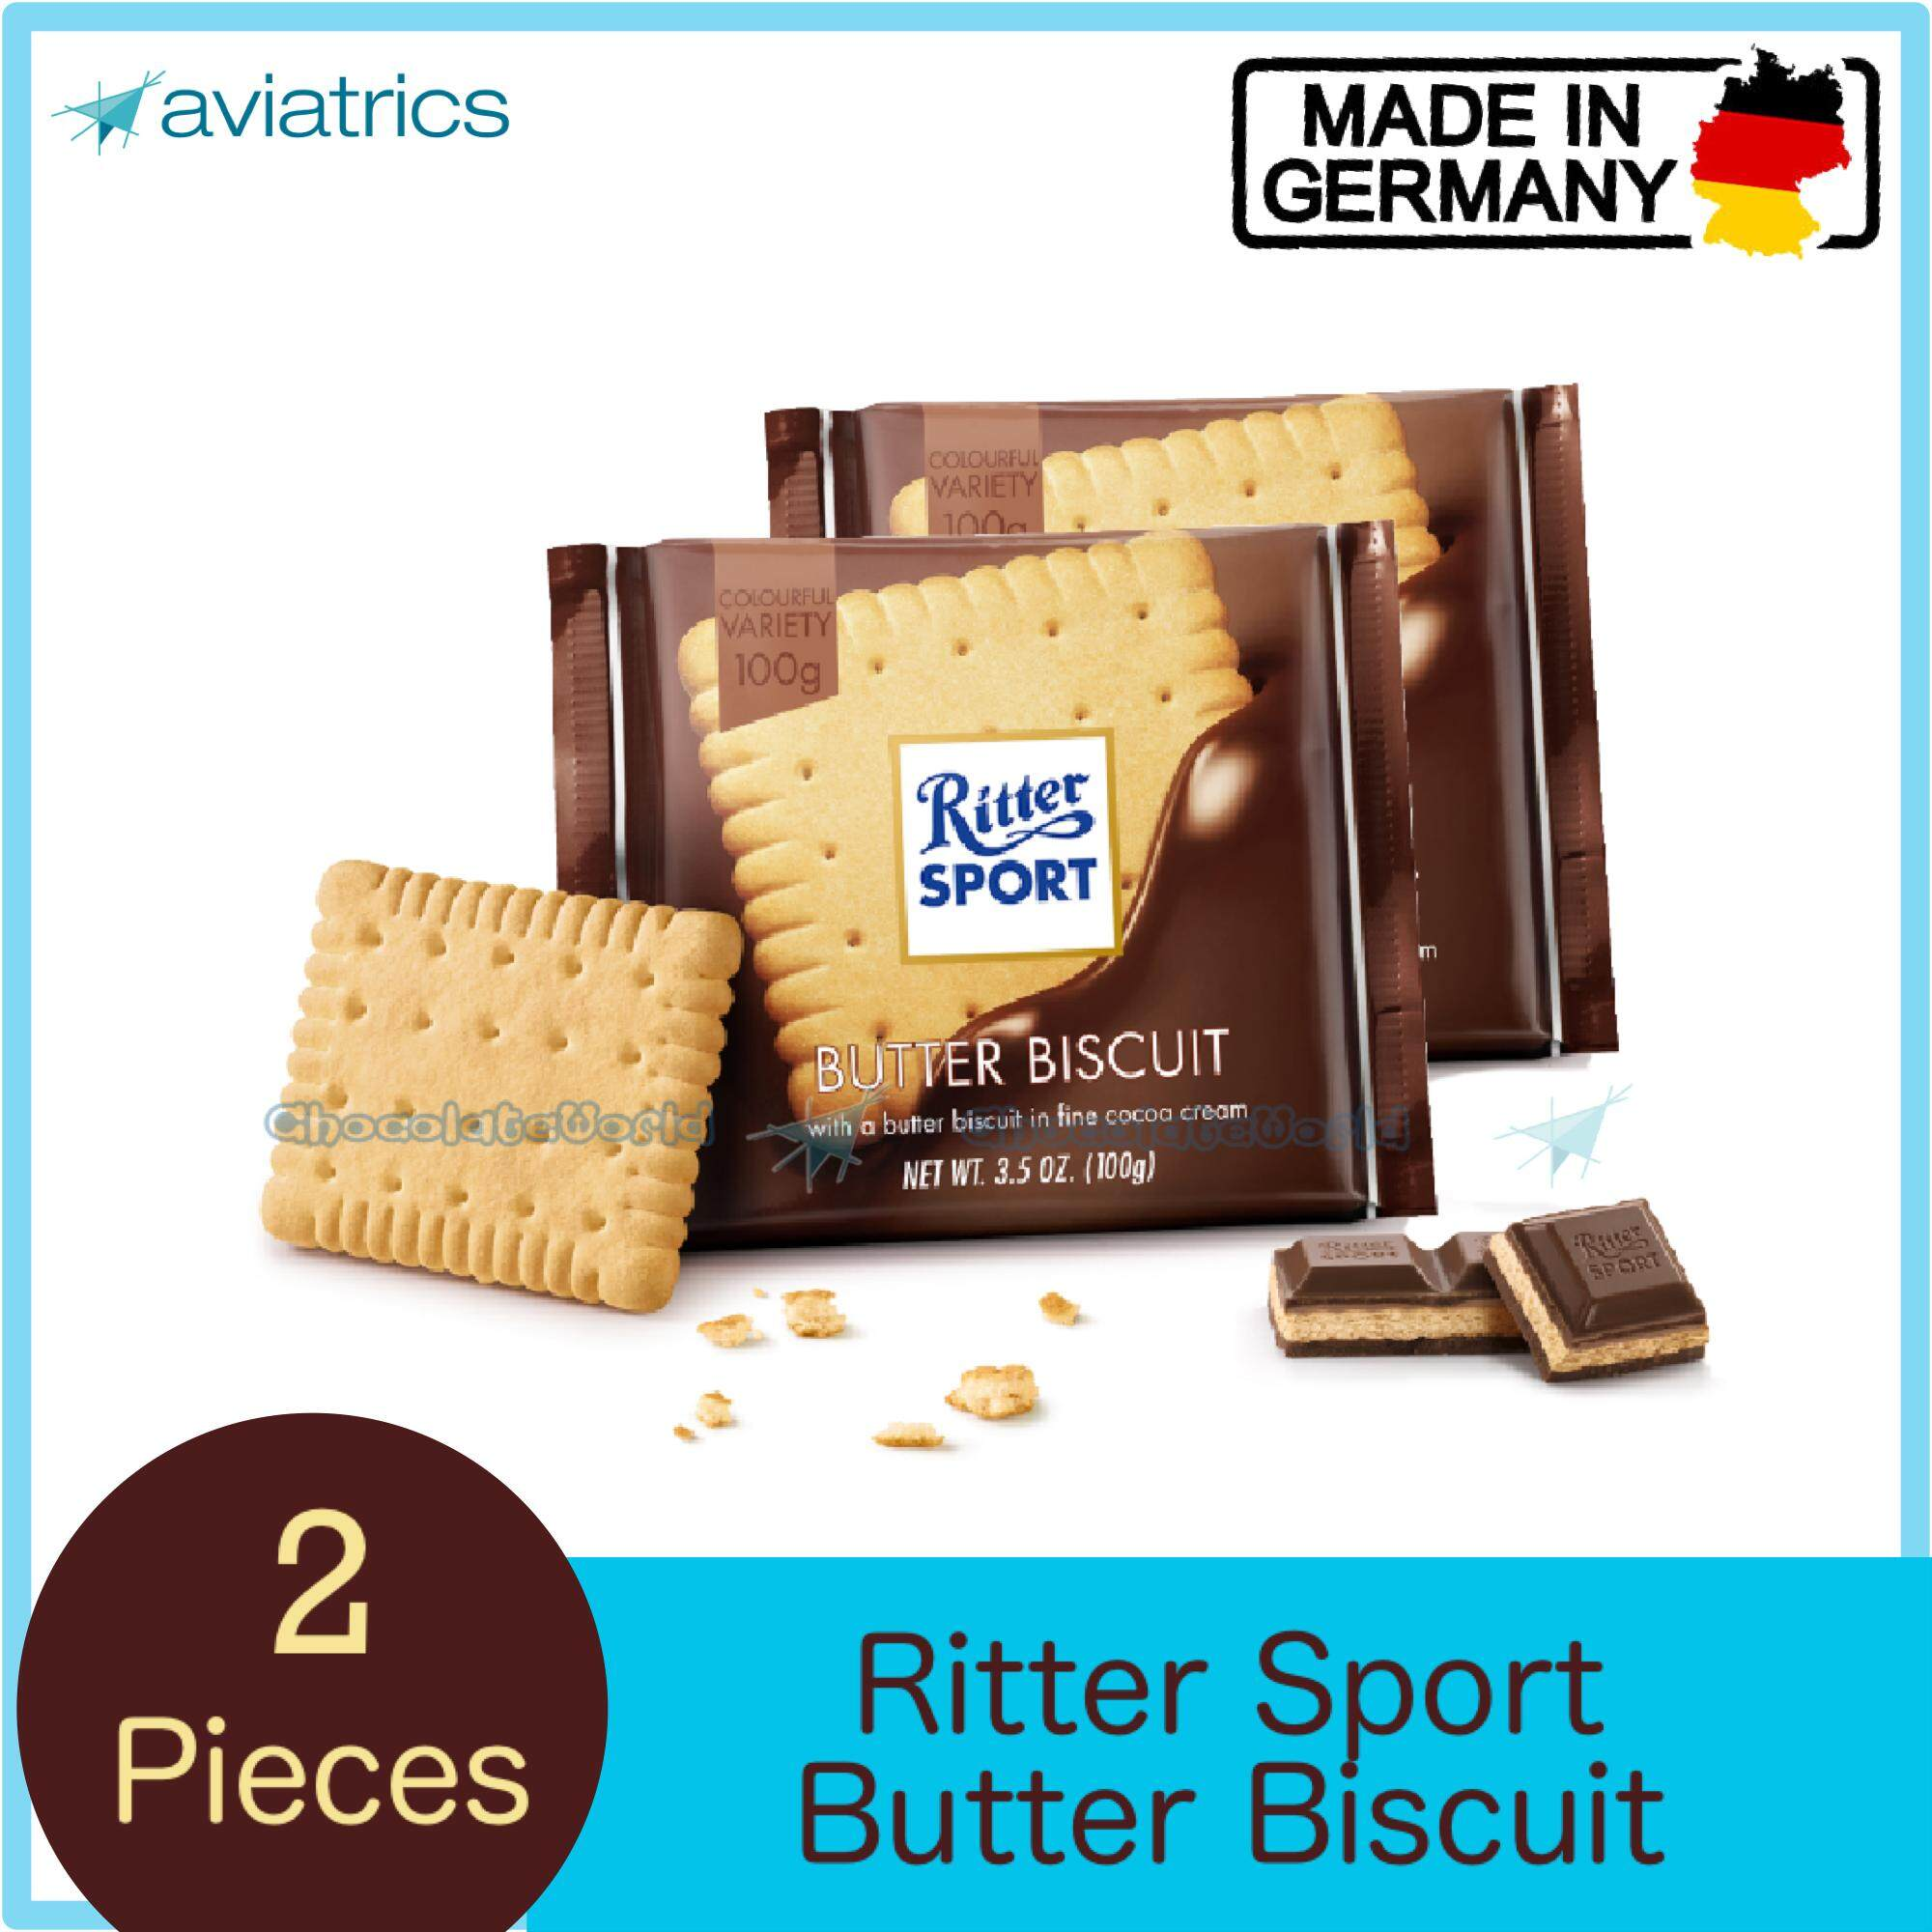 Ritter Sport Butter Biscuit 100g X 2 (Made in Germany)